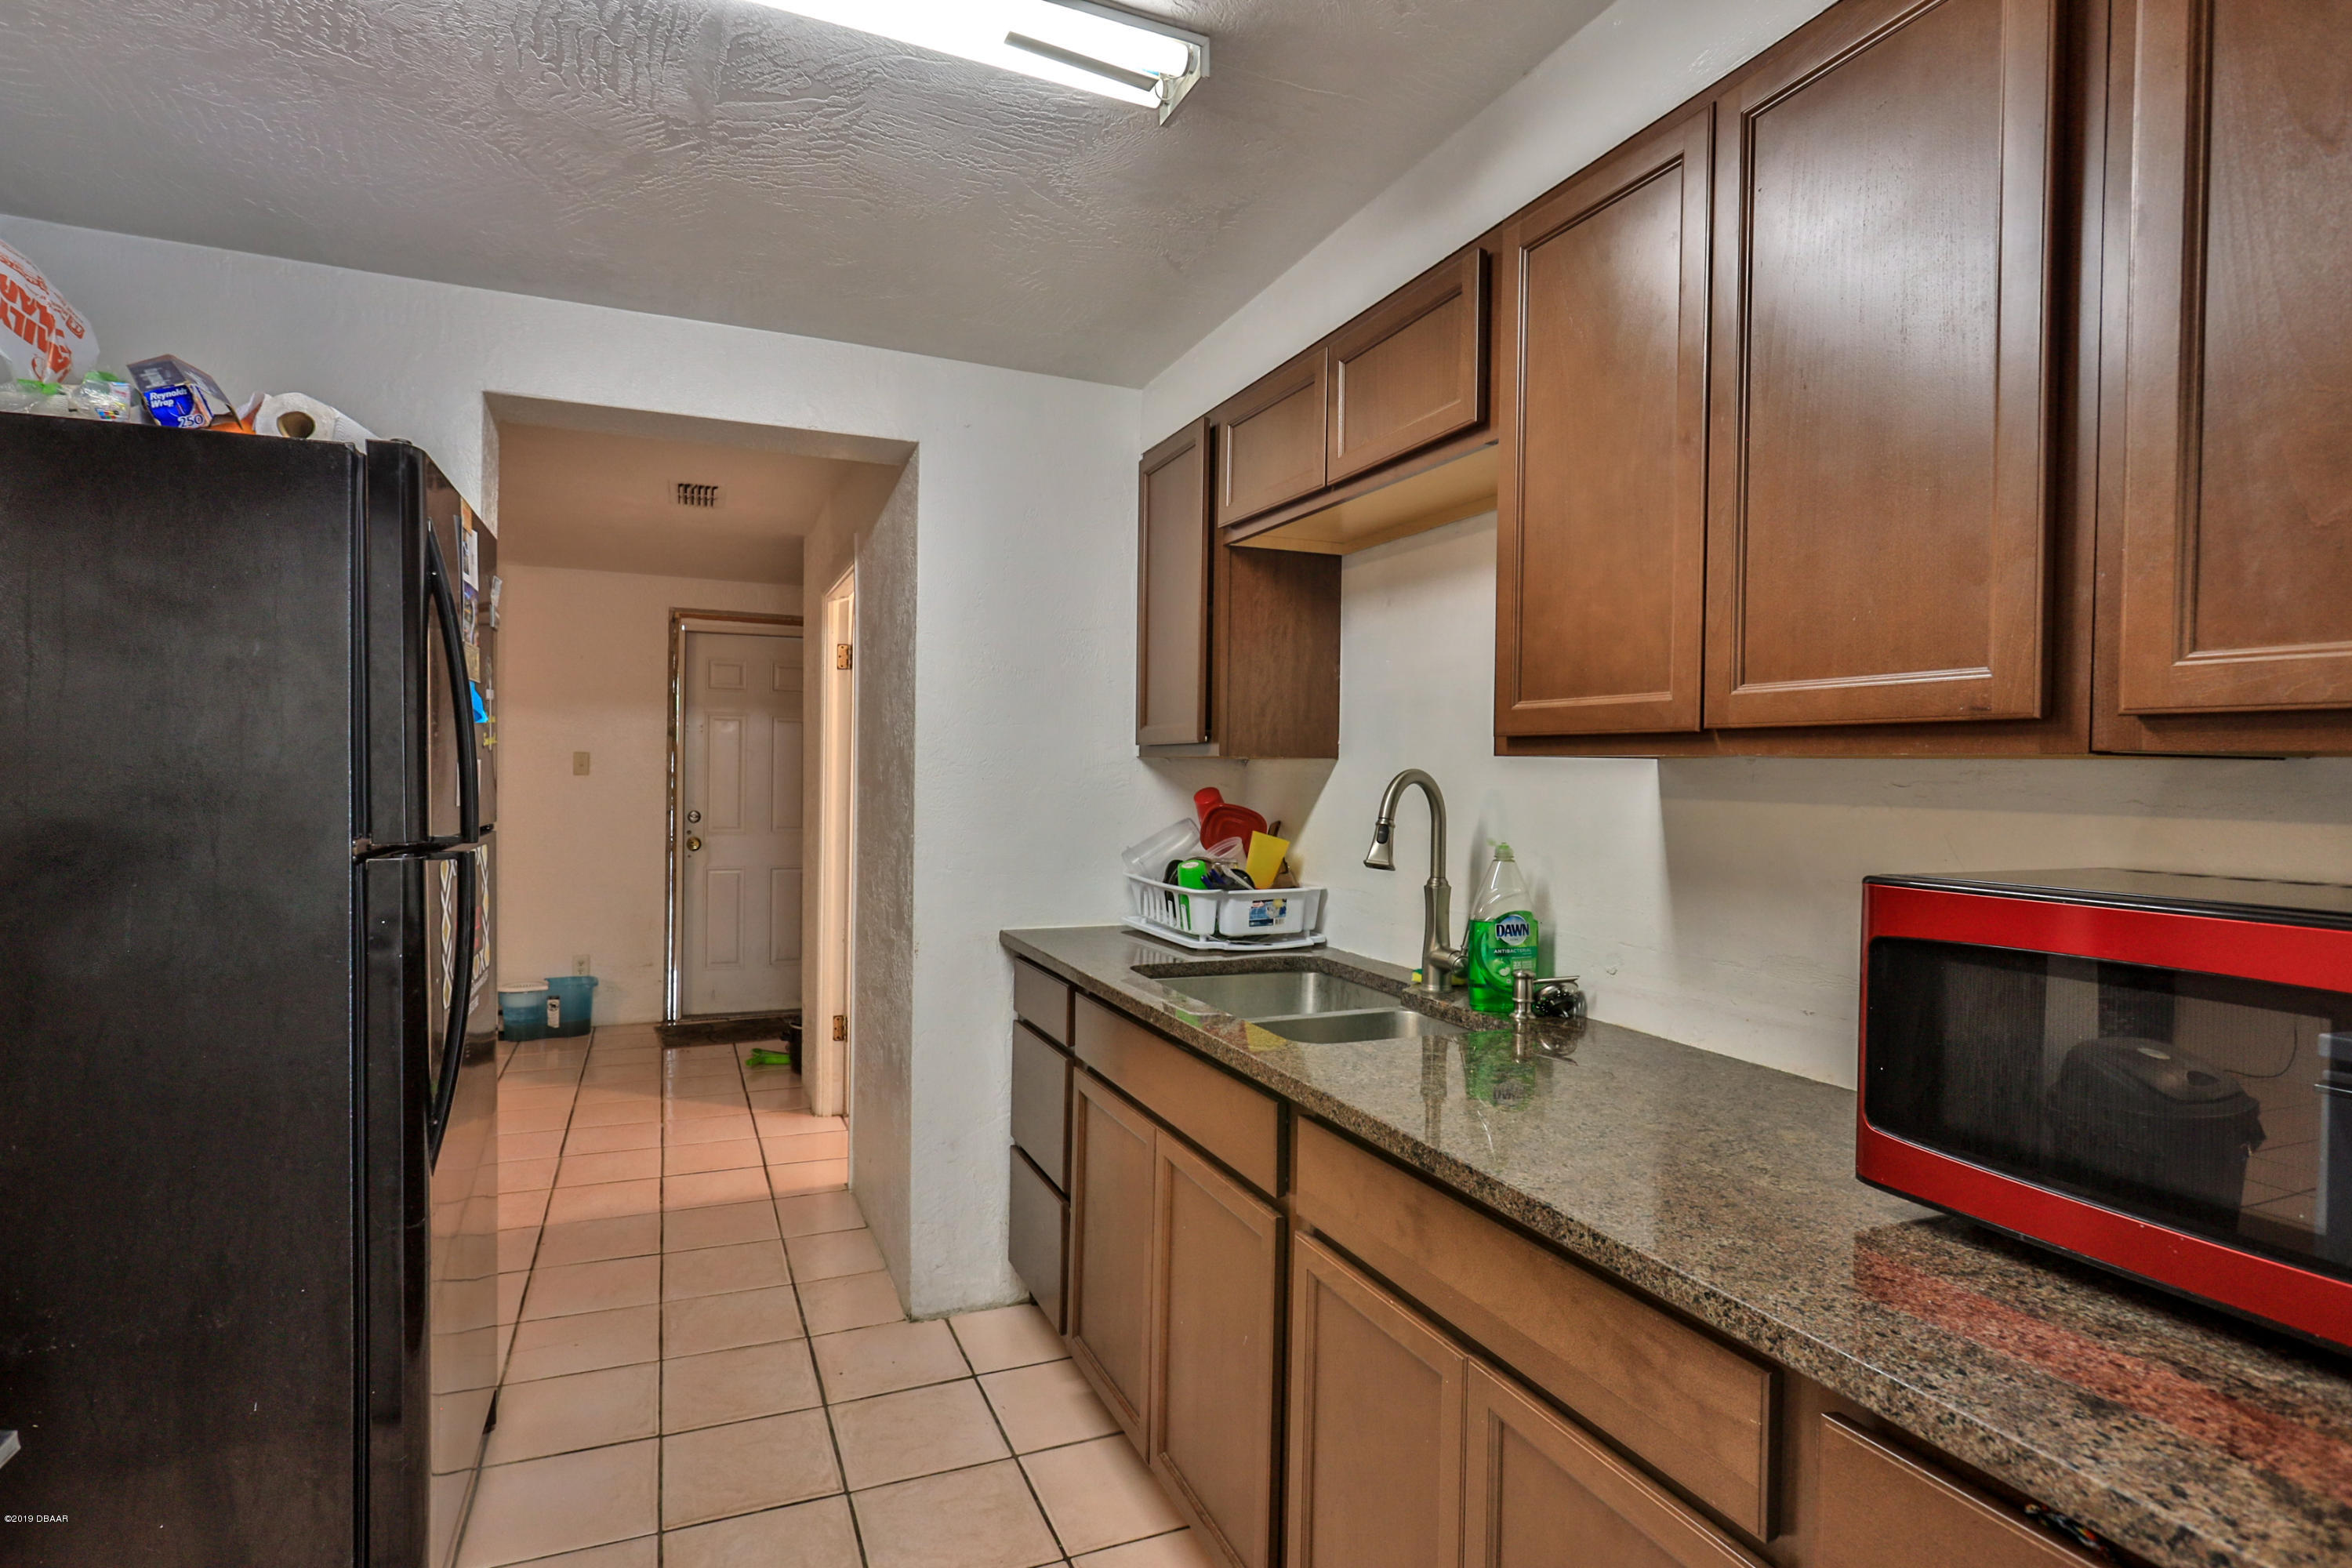 559 Fairmount Daytona Beach - 3